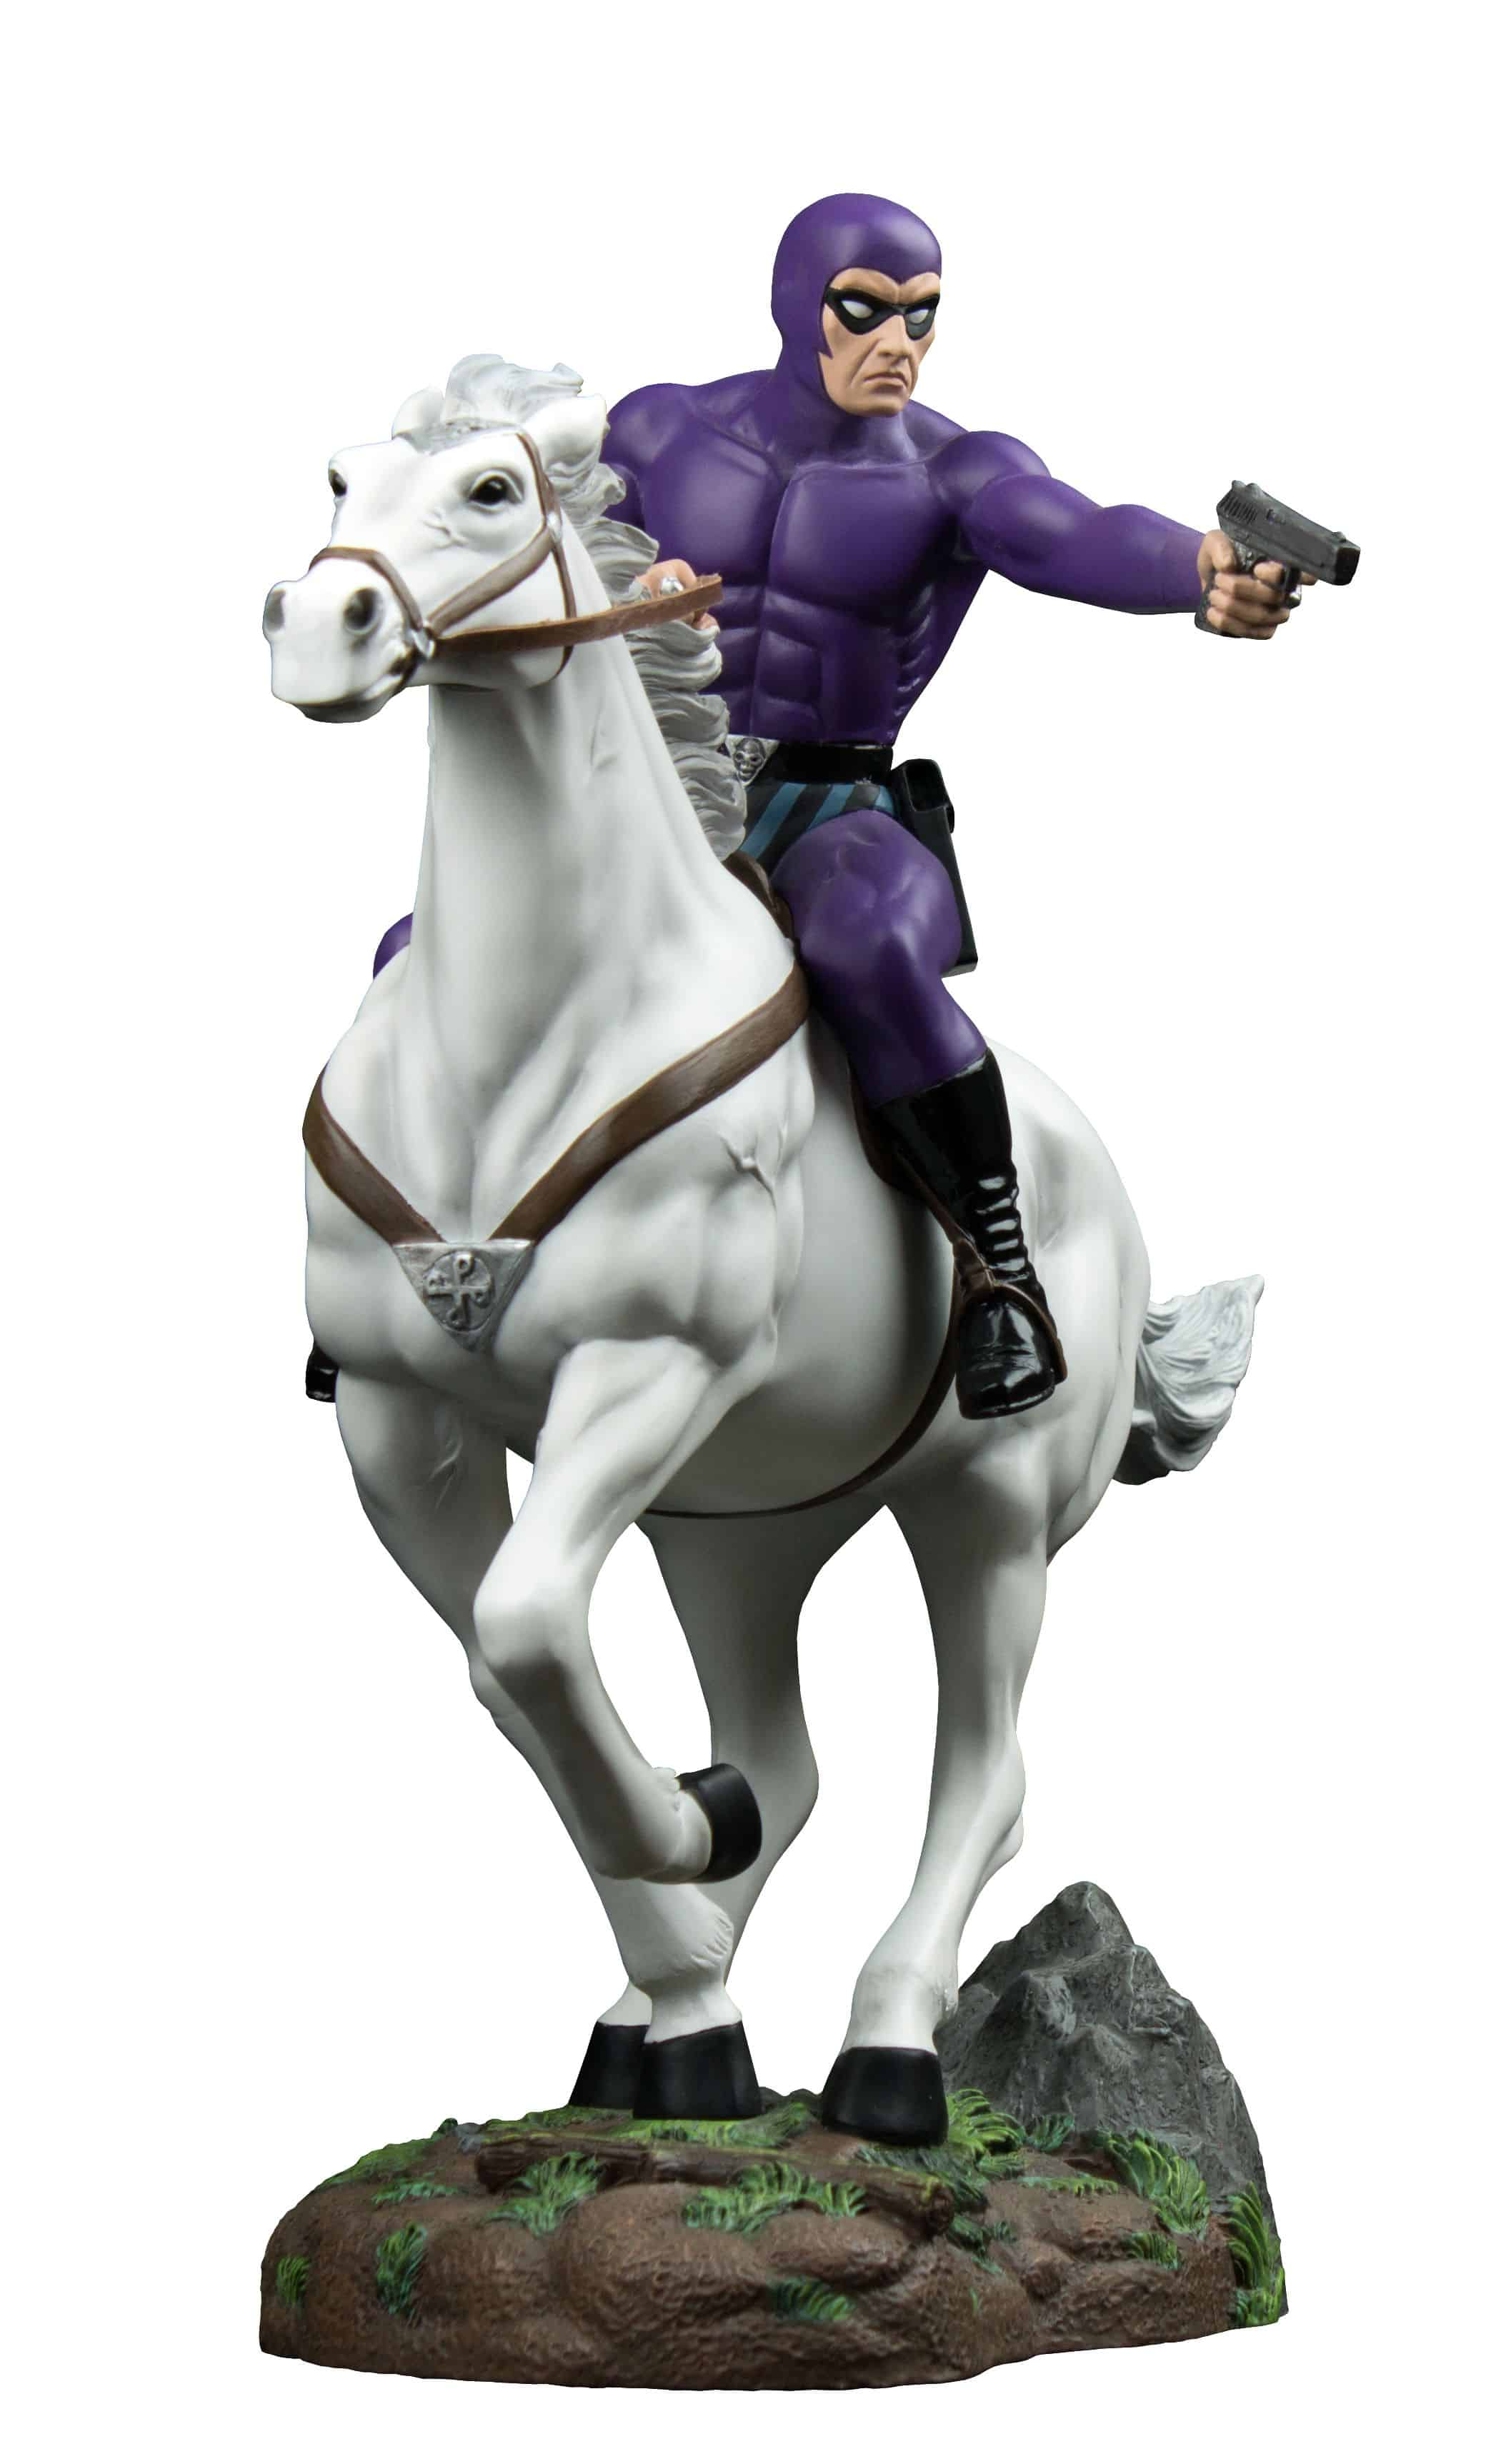 THE PHANTOM (PURPURA VERSION) MONTADO EN HERO ESTATUA 33 CM THE PHANTOM